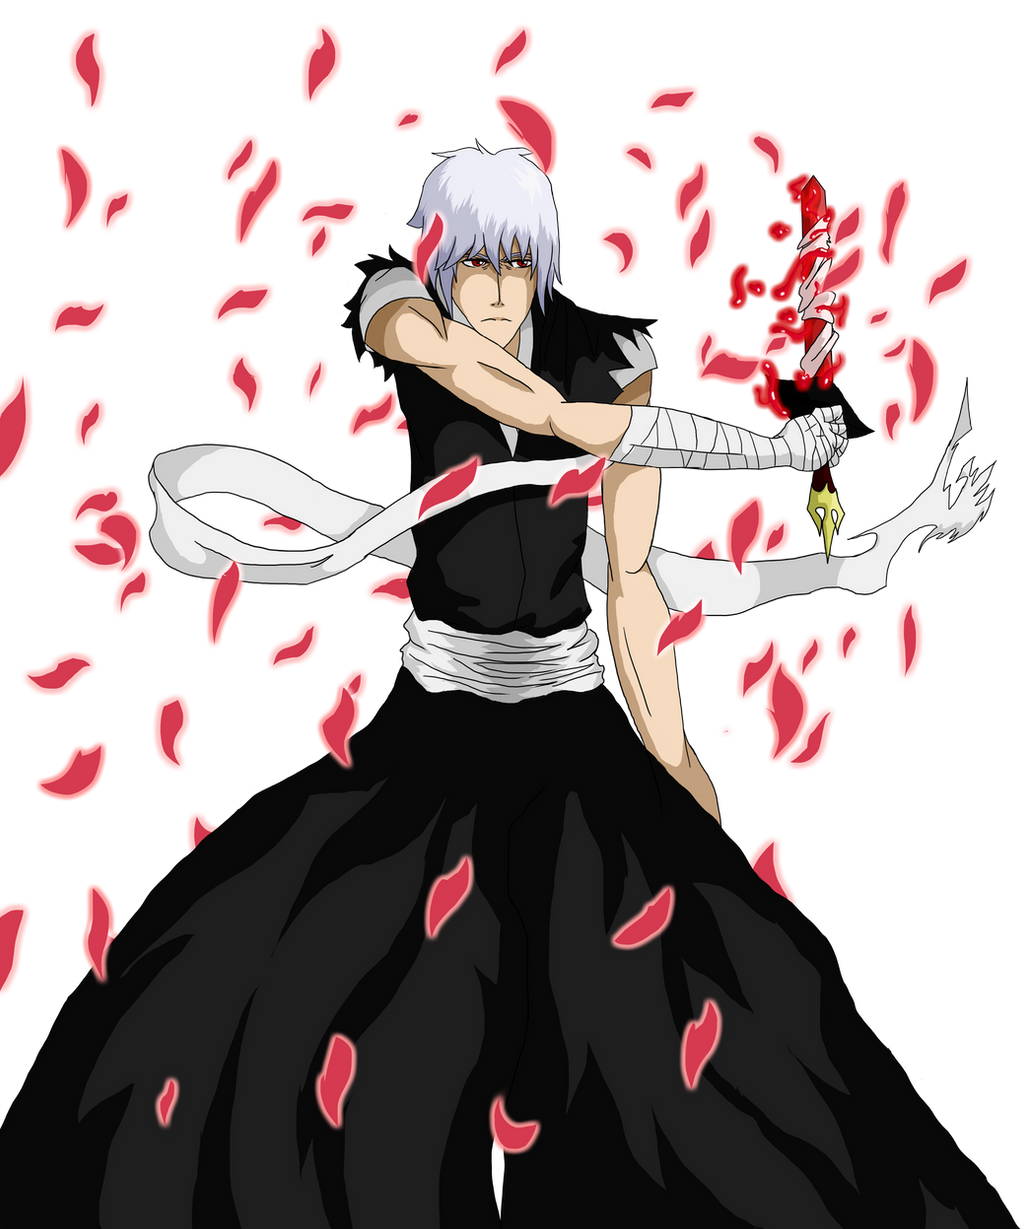 Bleach Oc Arashi By Sickeld160 On Deviantart: Bleach OC: Kiba Takeba Shikai (Updated) By 7thShepard On